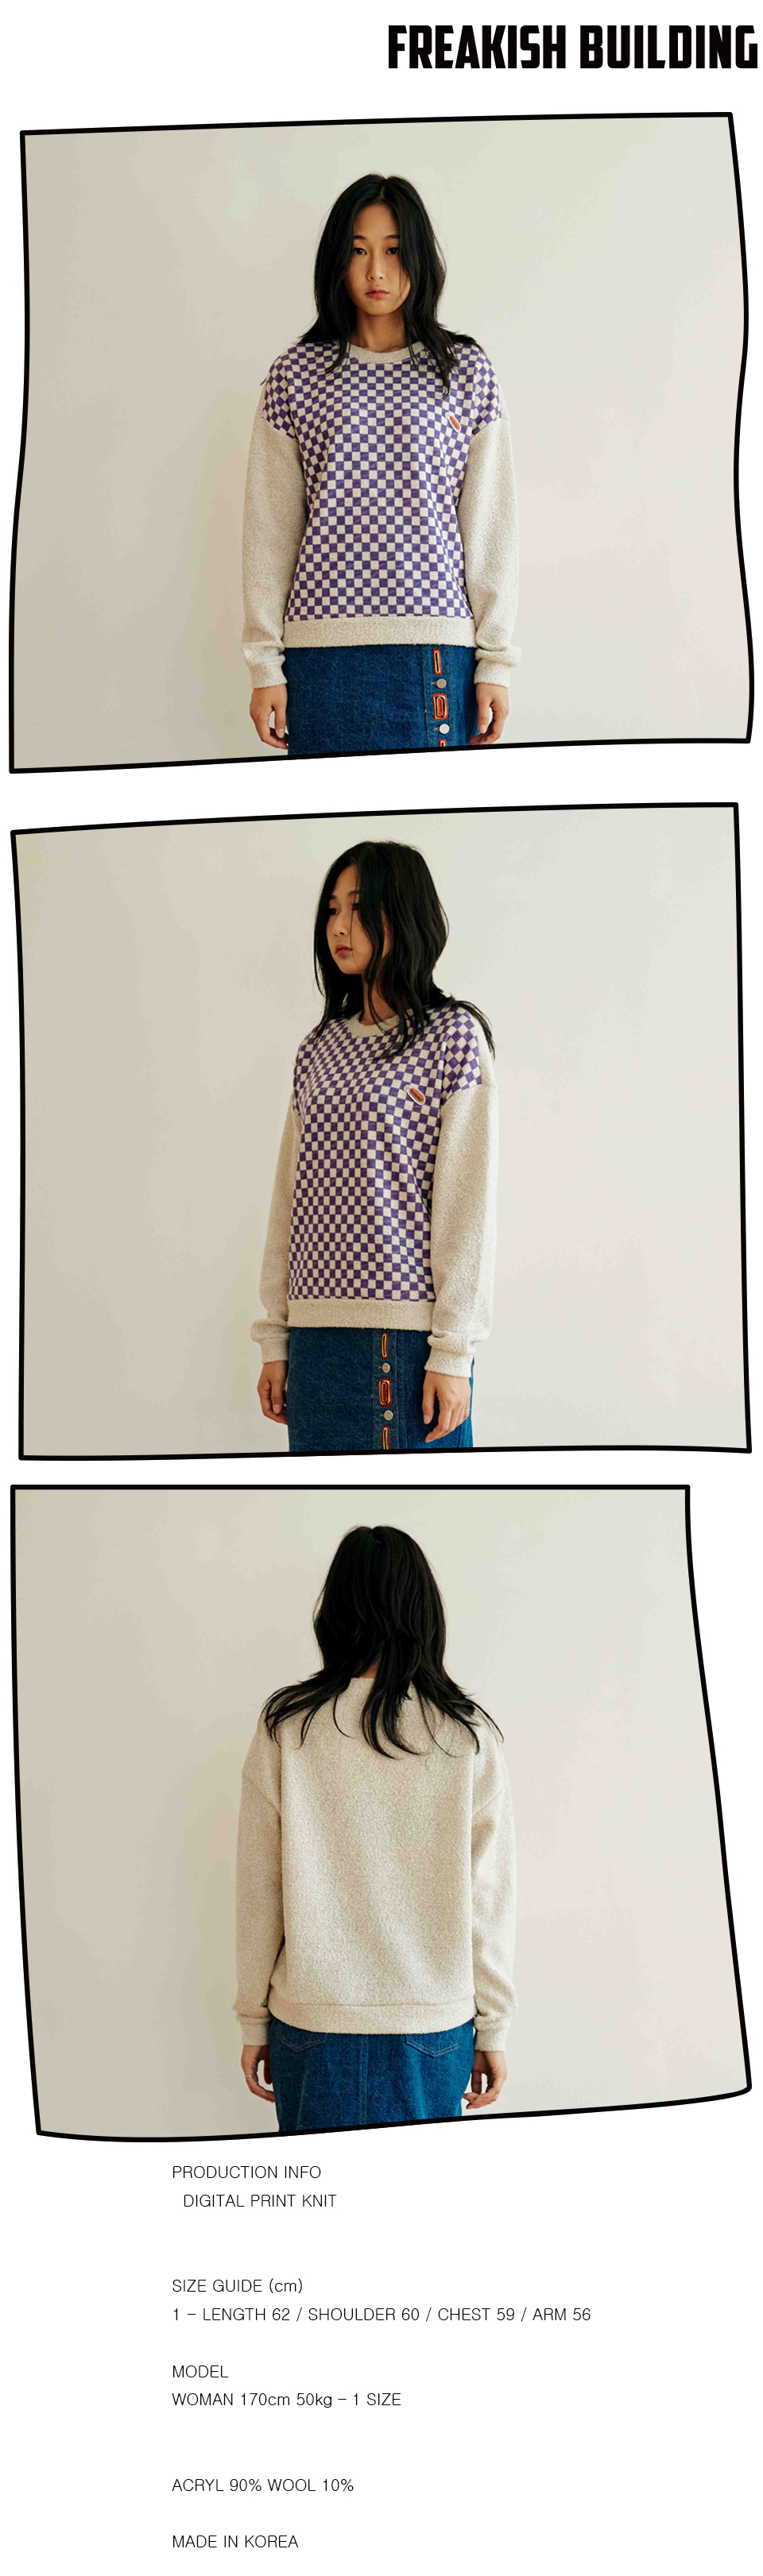 #13 BOING CHECKERBOARD SWEATER (VIOLET) 02.jpg